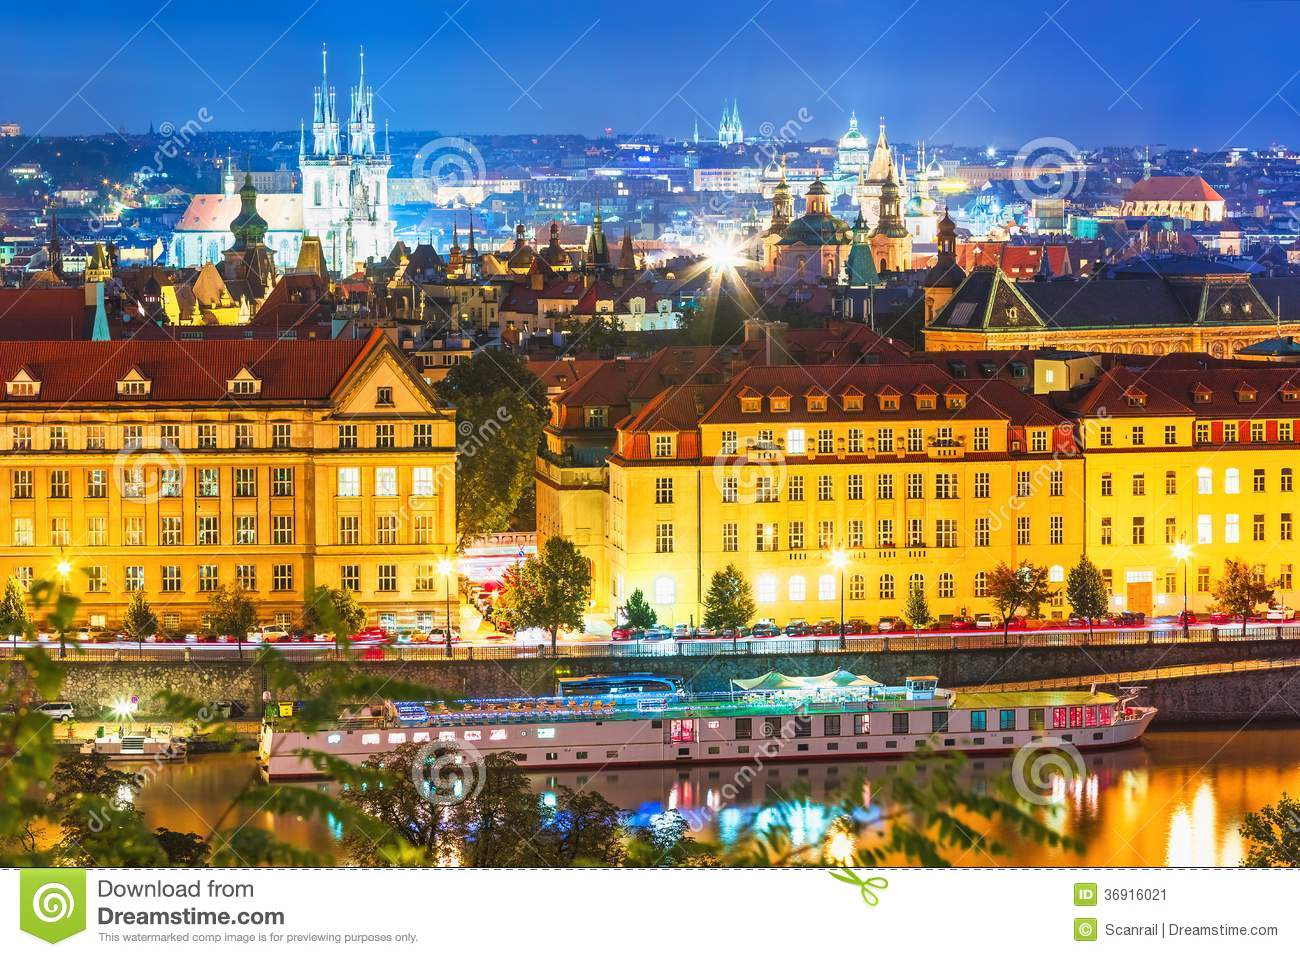 Stock Image Night Scenery Prague Czech Republic Scenic Summer Aerial Panorama Old Town Pier Architecture Vltava River Image36916021 further Watch besides Wooden Building Blocks On A White Background Vector 6433545 further Independent House Design Plans in addition wel ulturerbe Pfahlbauten. on pier house plans